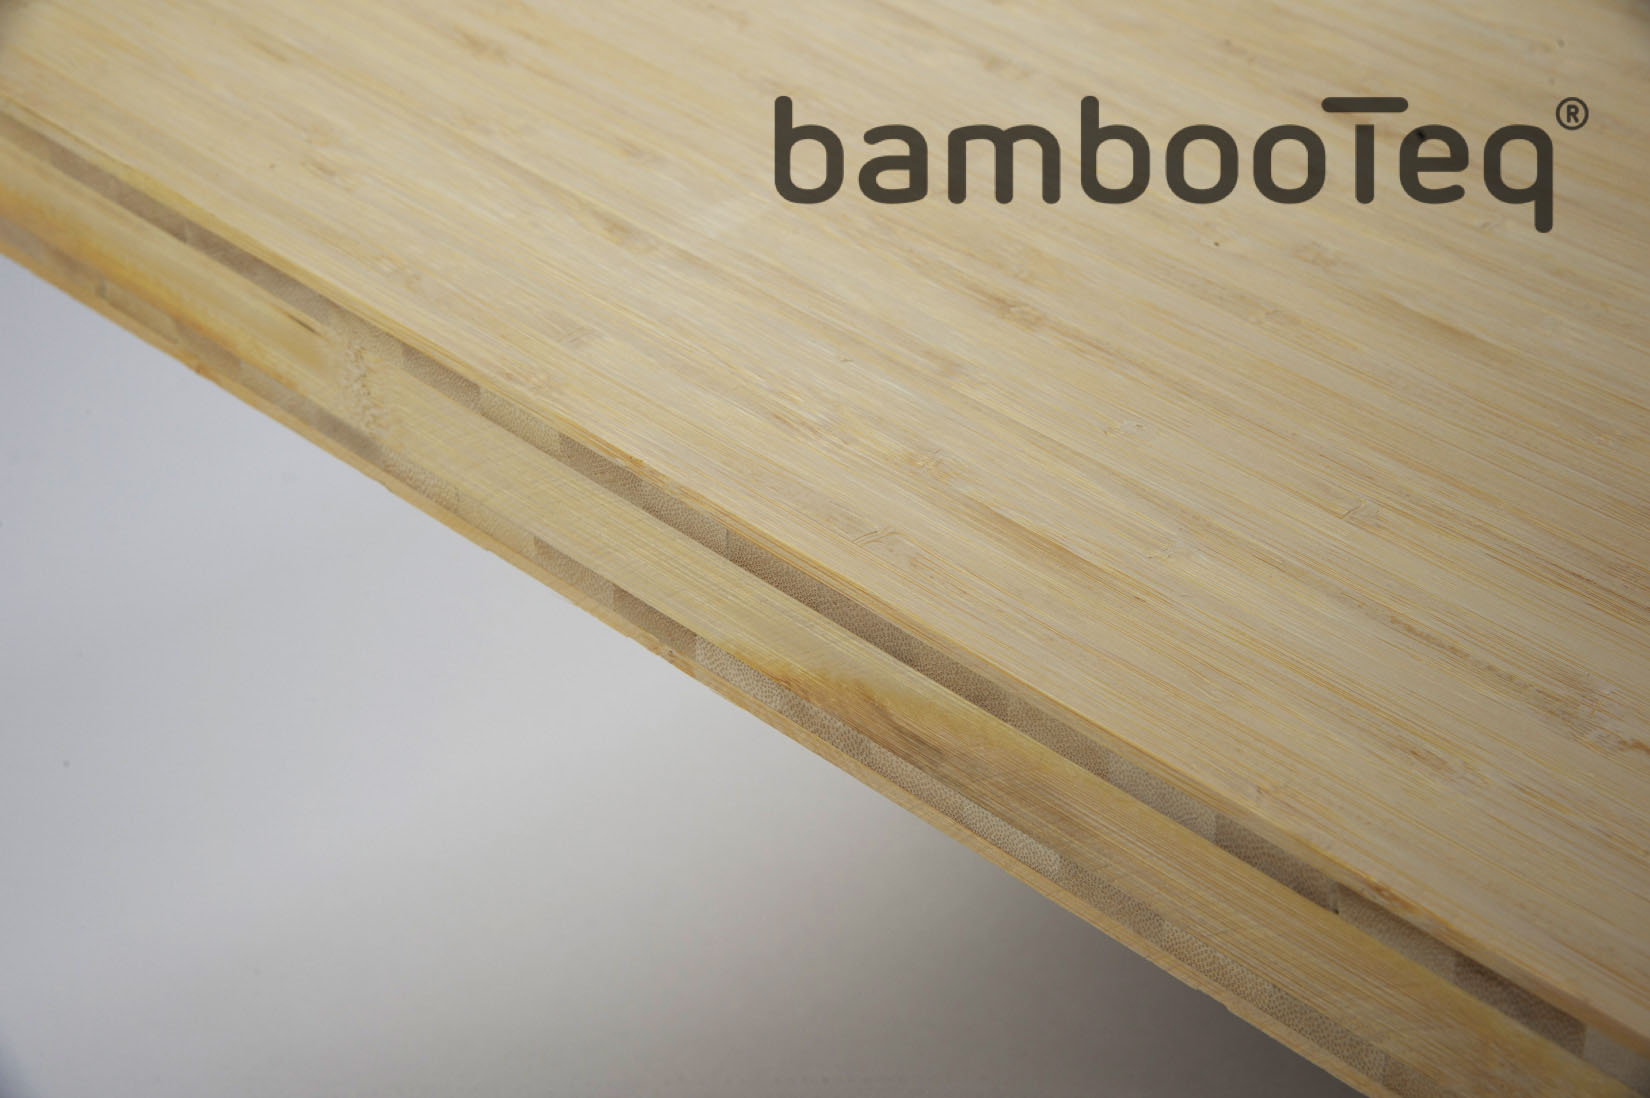 Nieuw: BambooTeq moso bamboe (Phyllostachys Pubescens) plaatmateriaal